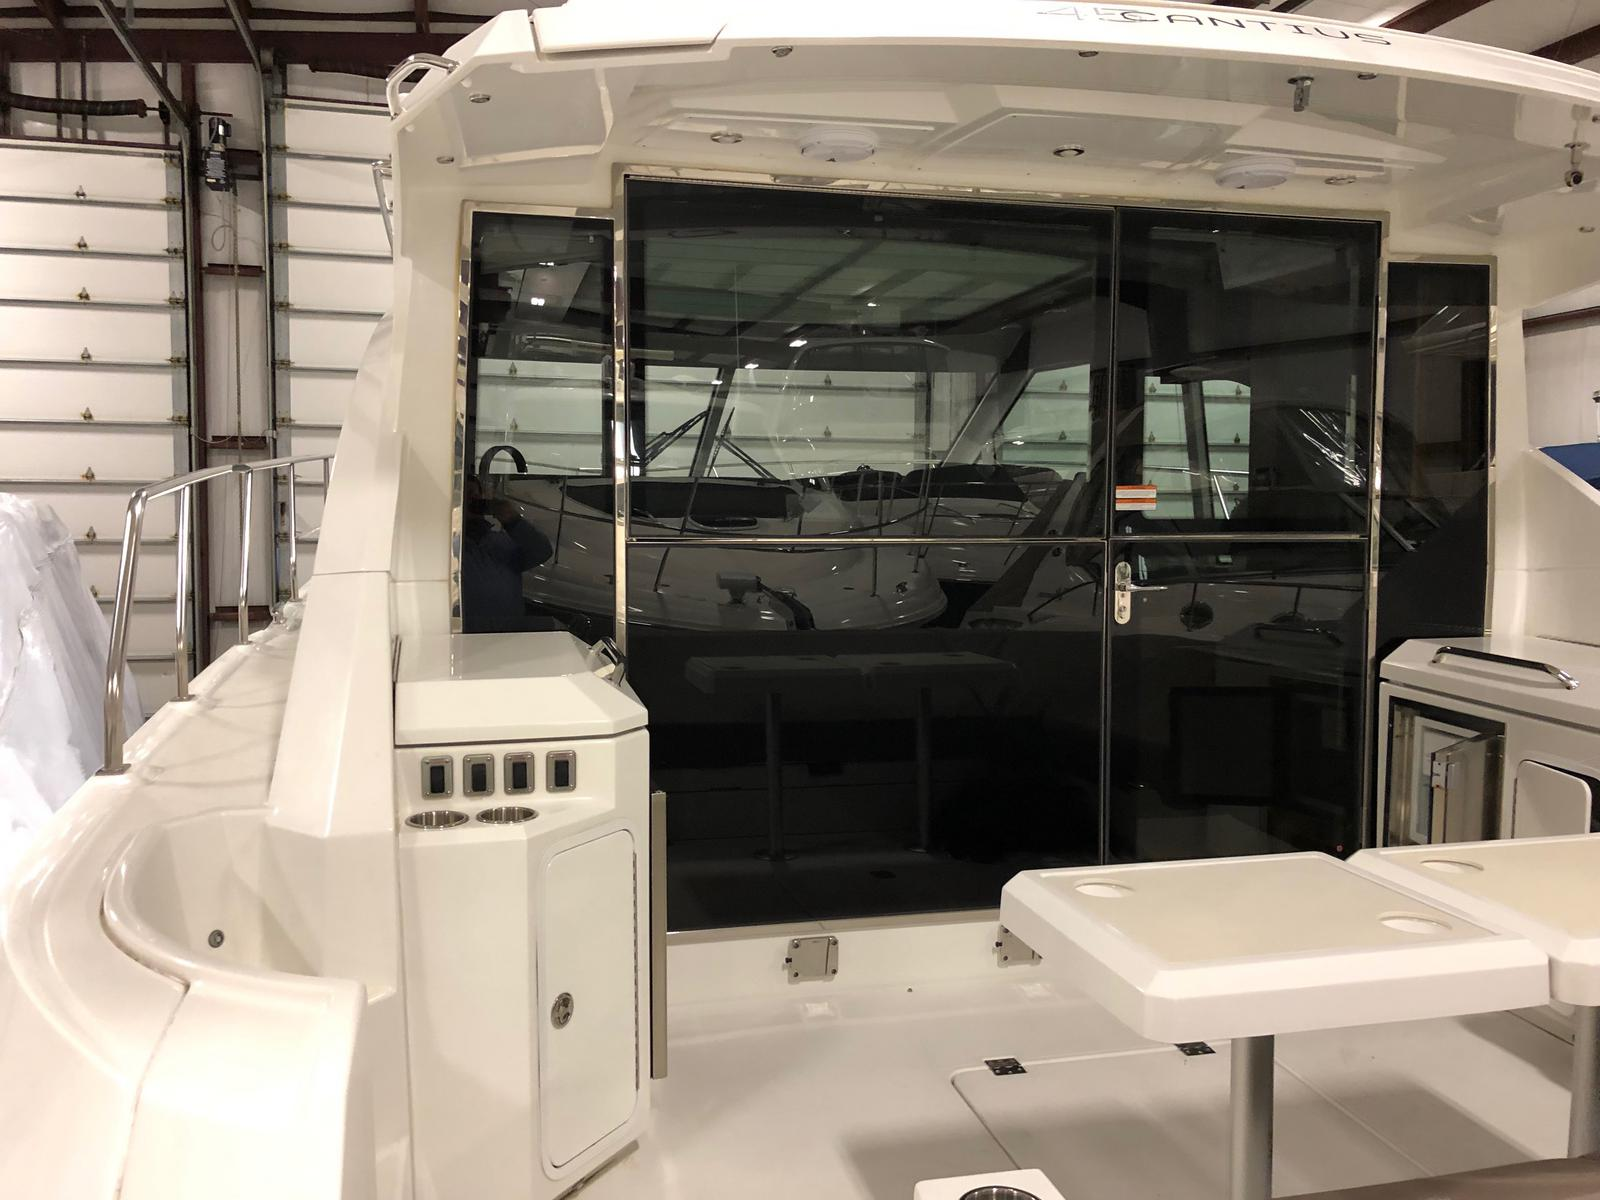 2016 Cruisers Yachts boat for sale, model of the boat is 45 Cantius & Image # 11 of 16